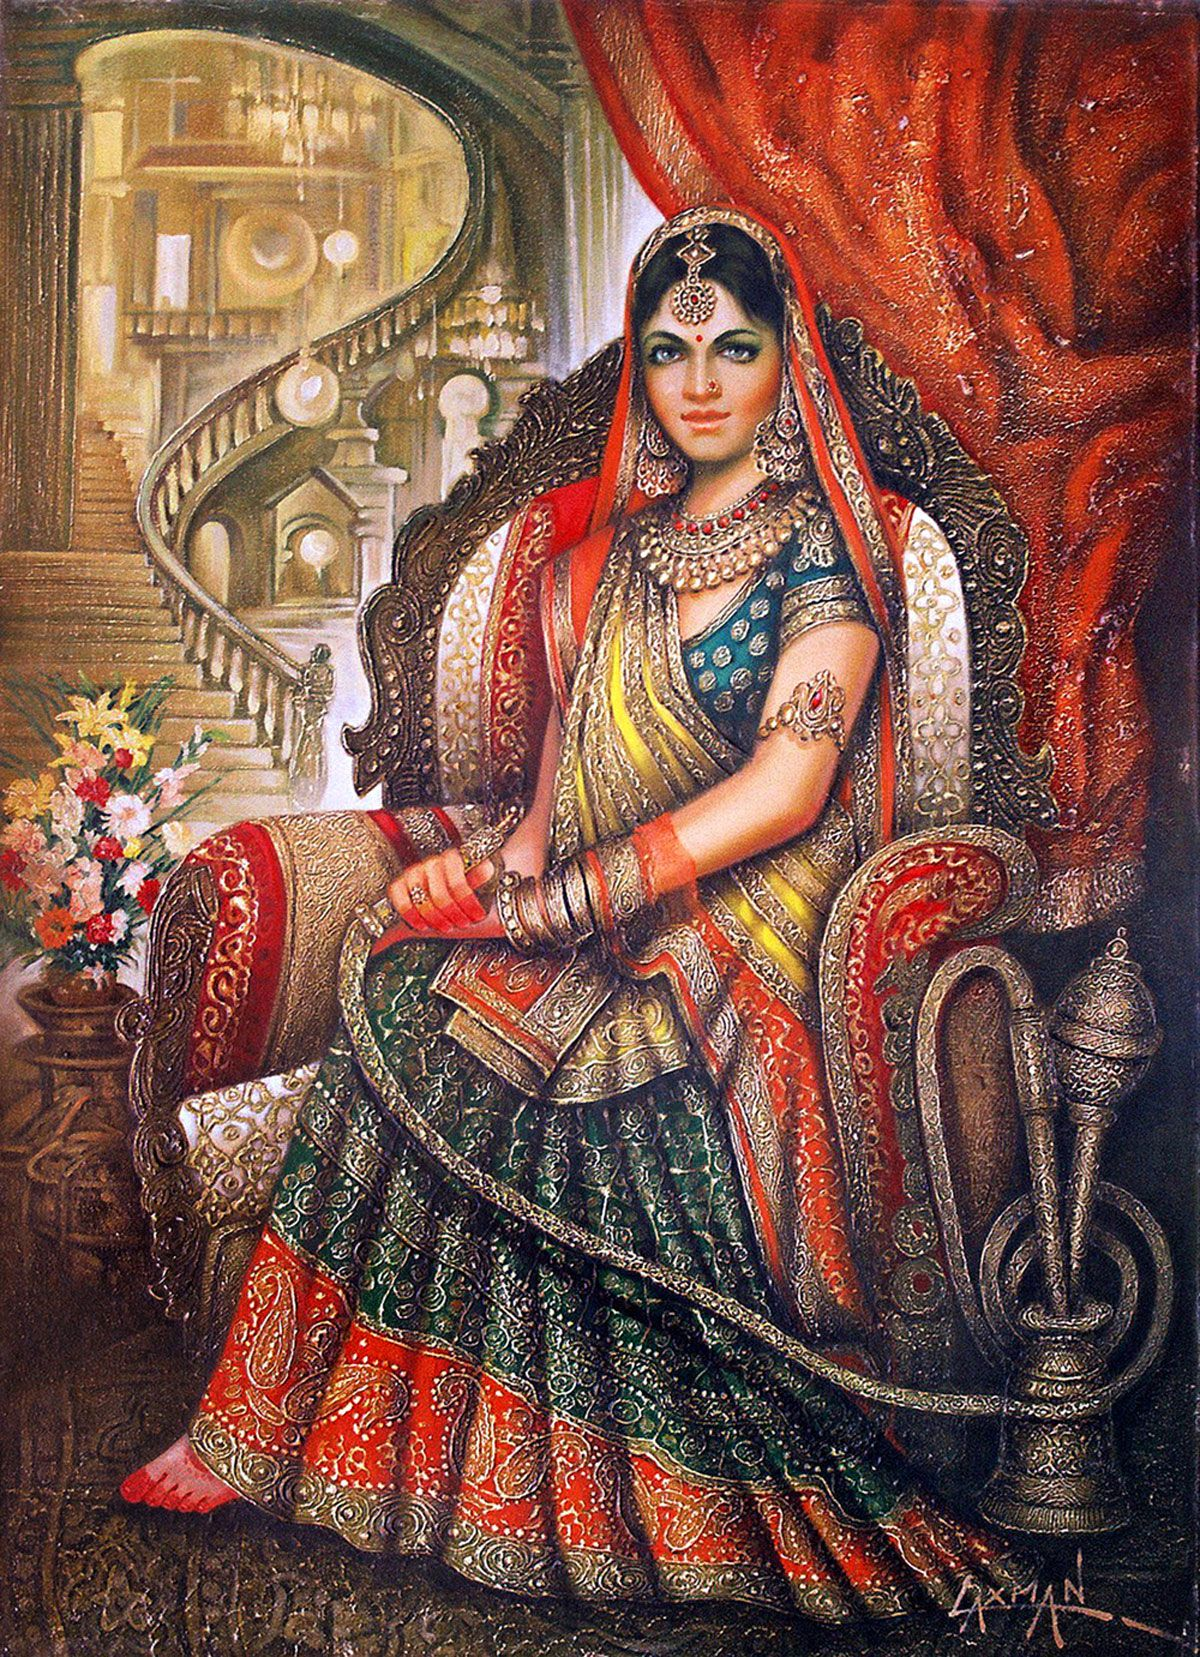 Easy Rajasthani Paintings Of Women | www.imgkid.com - The ...